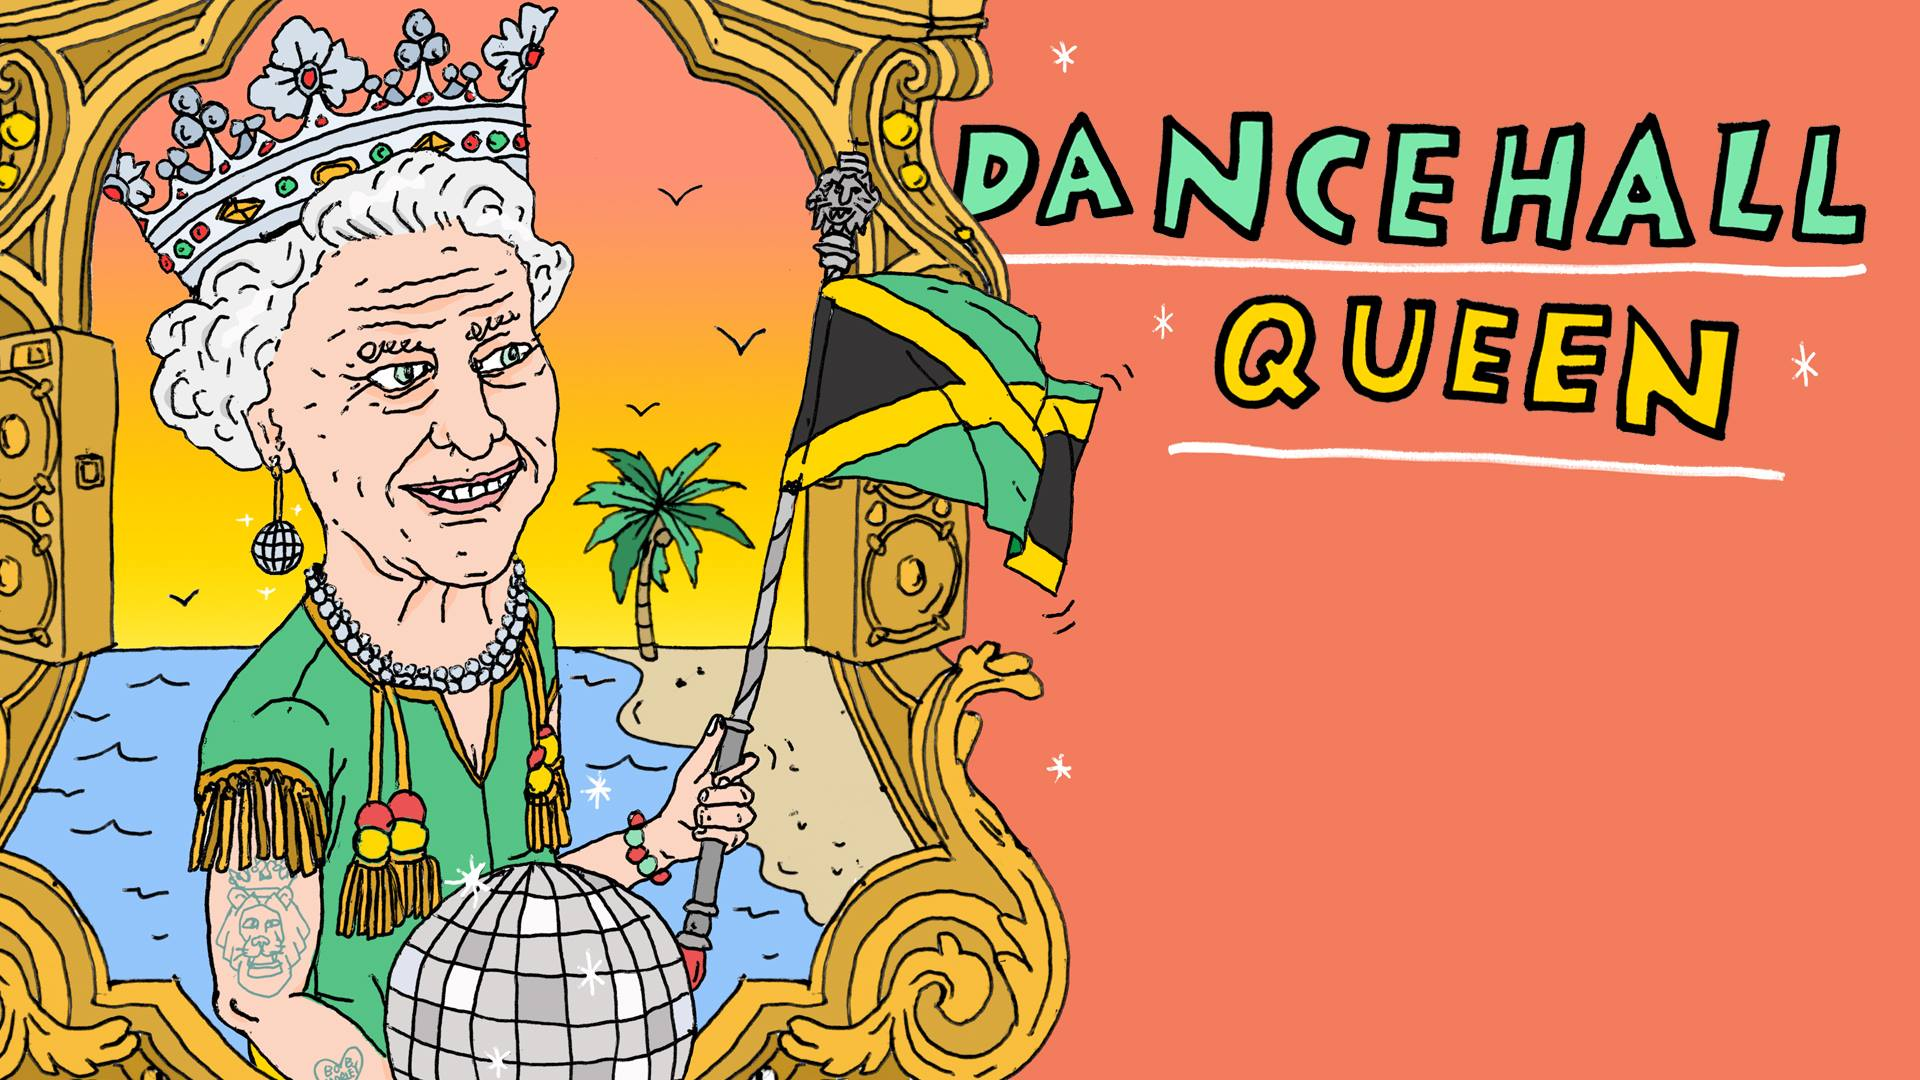 It was the Queens 90th birthday this year and this August Bank Holiday is Notting Hill Carnival, so we thought, why not combine the 2!? Enter Dancehall Queen, the ultimate Dancehall & Bashment night and we're coming to The Macbeth for a Carnival After Party.    DJ's playing the likes of - Sean Paul / Konshens / Shaggy / Mr Vegas / Spice / Machel Montano / Bunji Garlin / Shabba Ranks / Timaya / Atumpan / Major Lazer / Stylo G    Names on the event wall for £3 entry before 11pm.